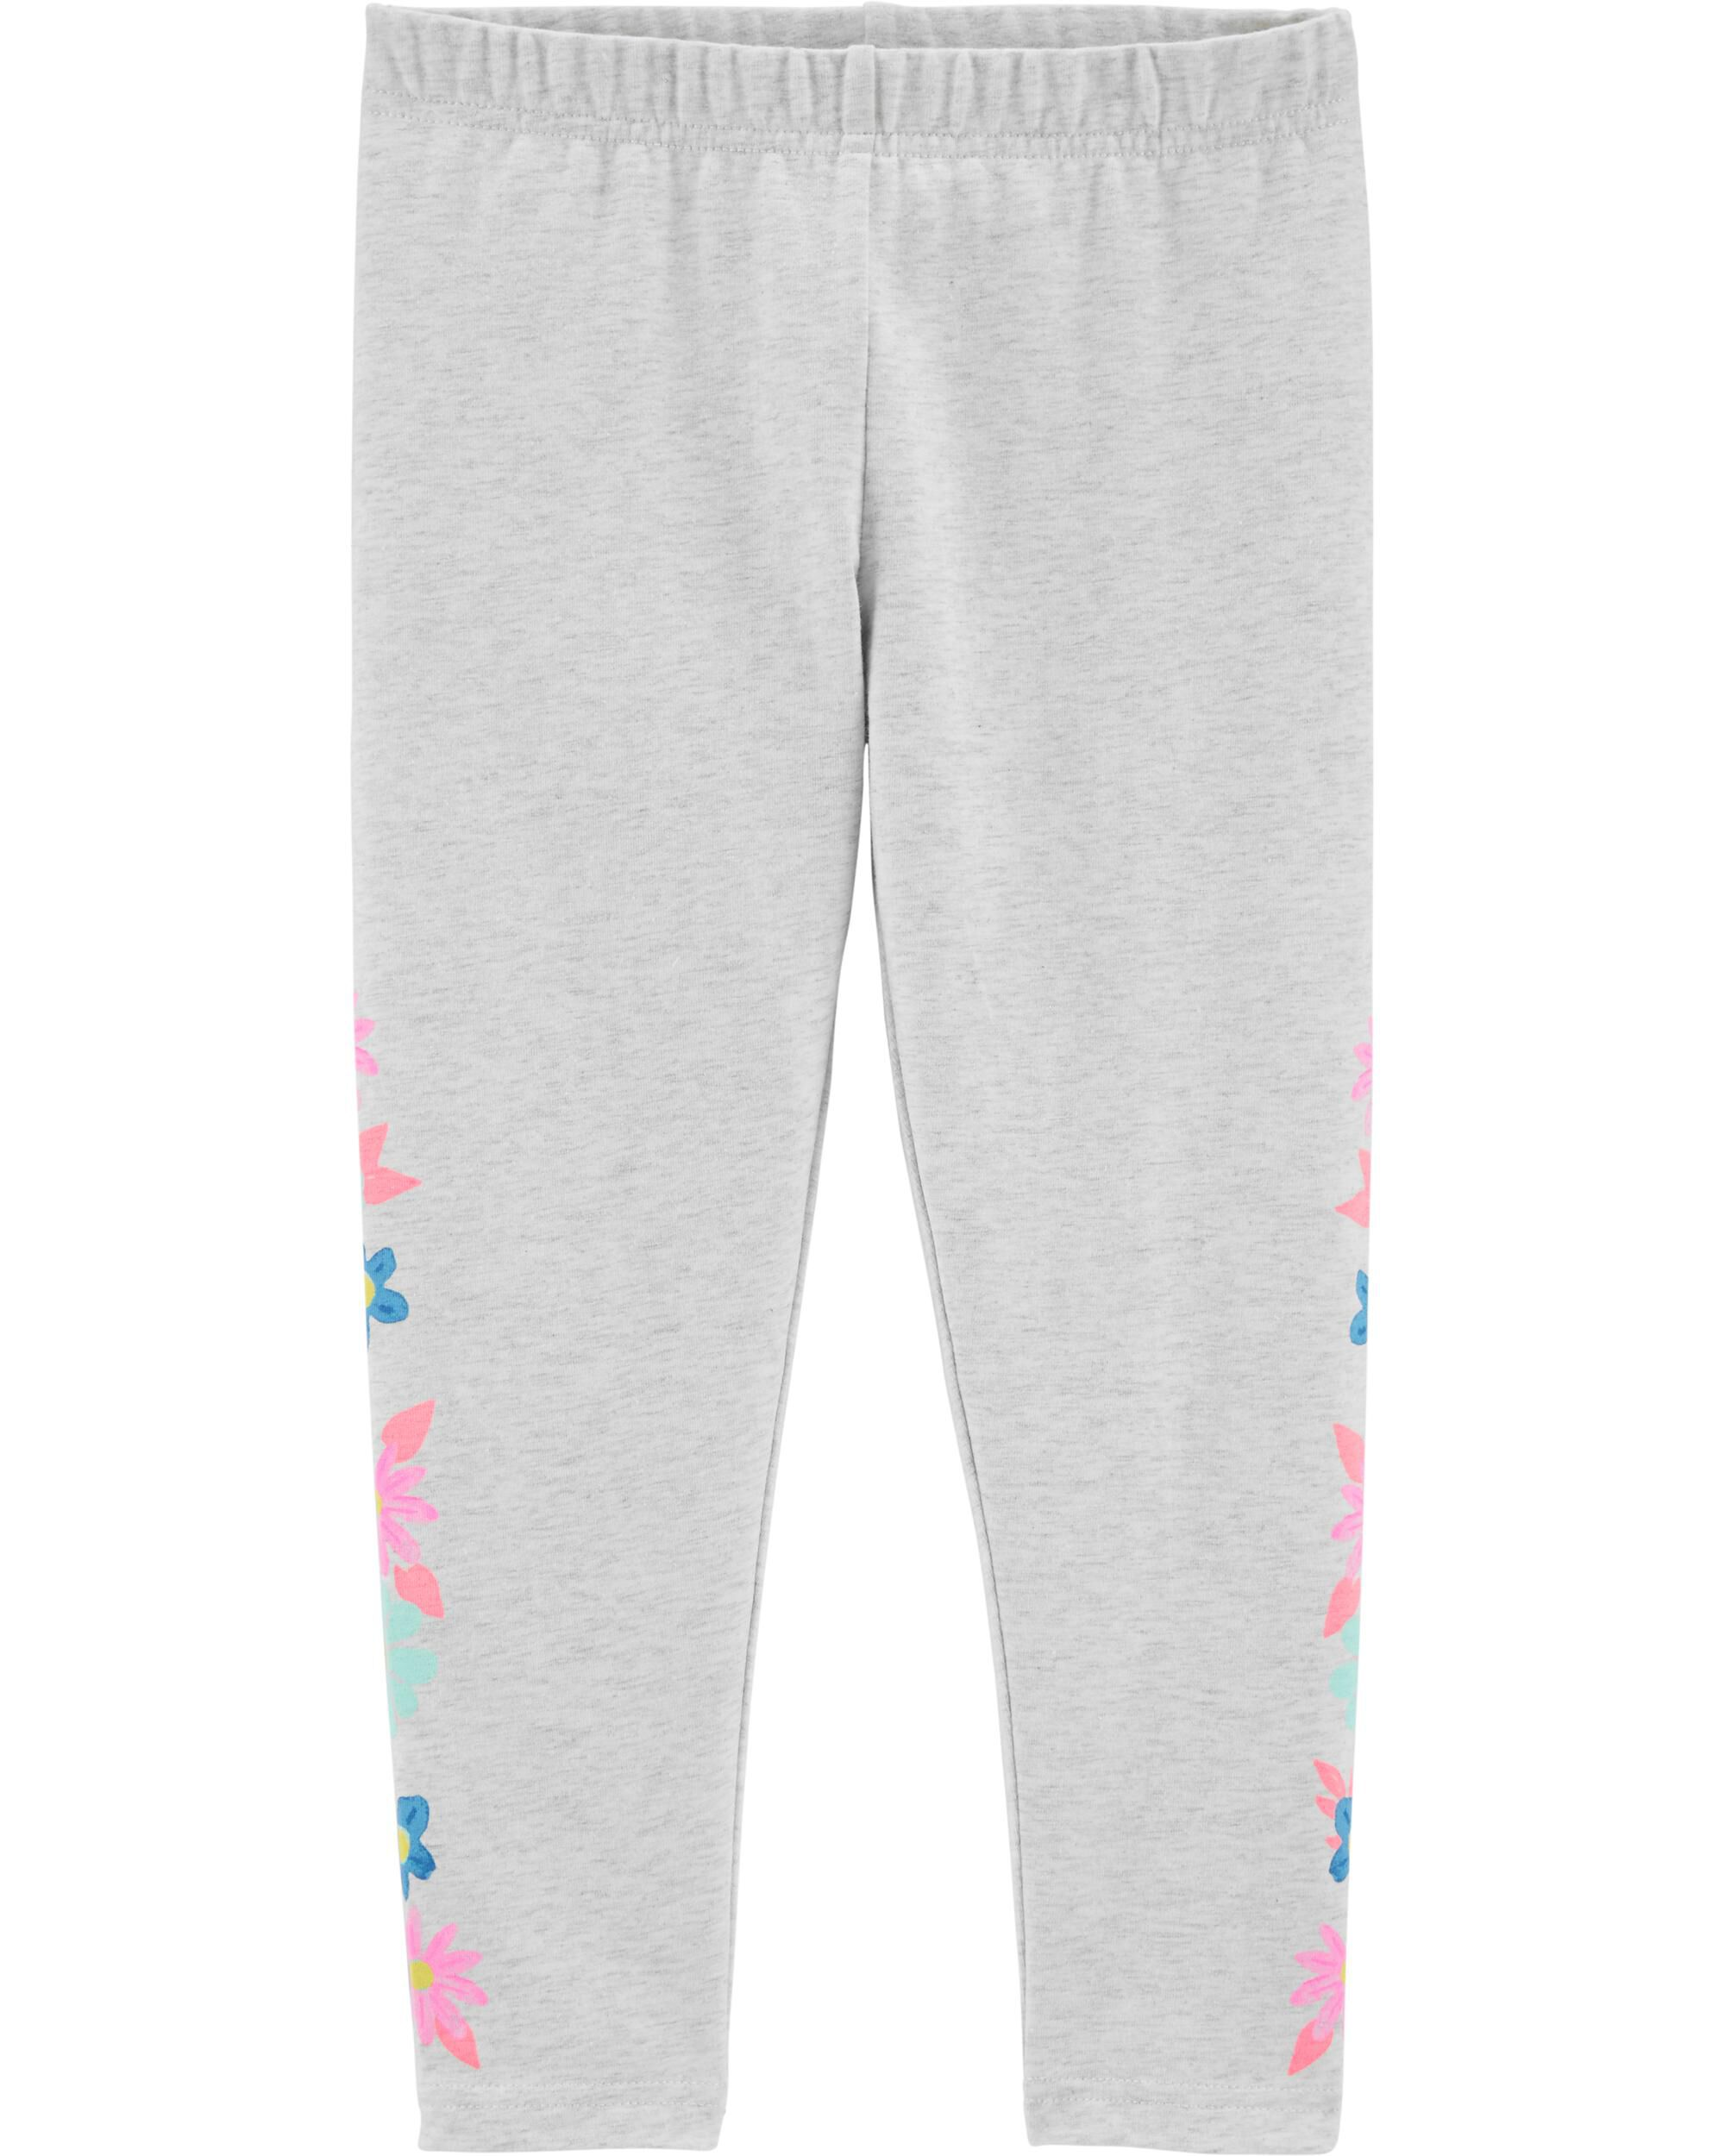 *CLEARANCE*Floral Leggings